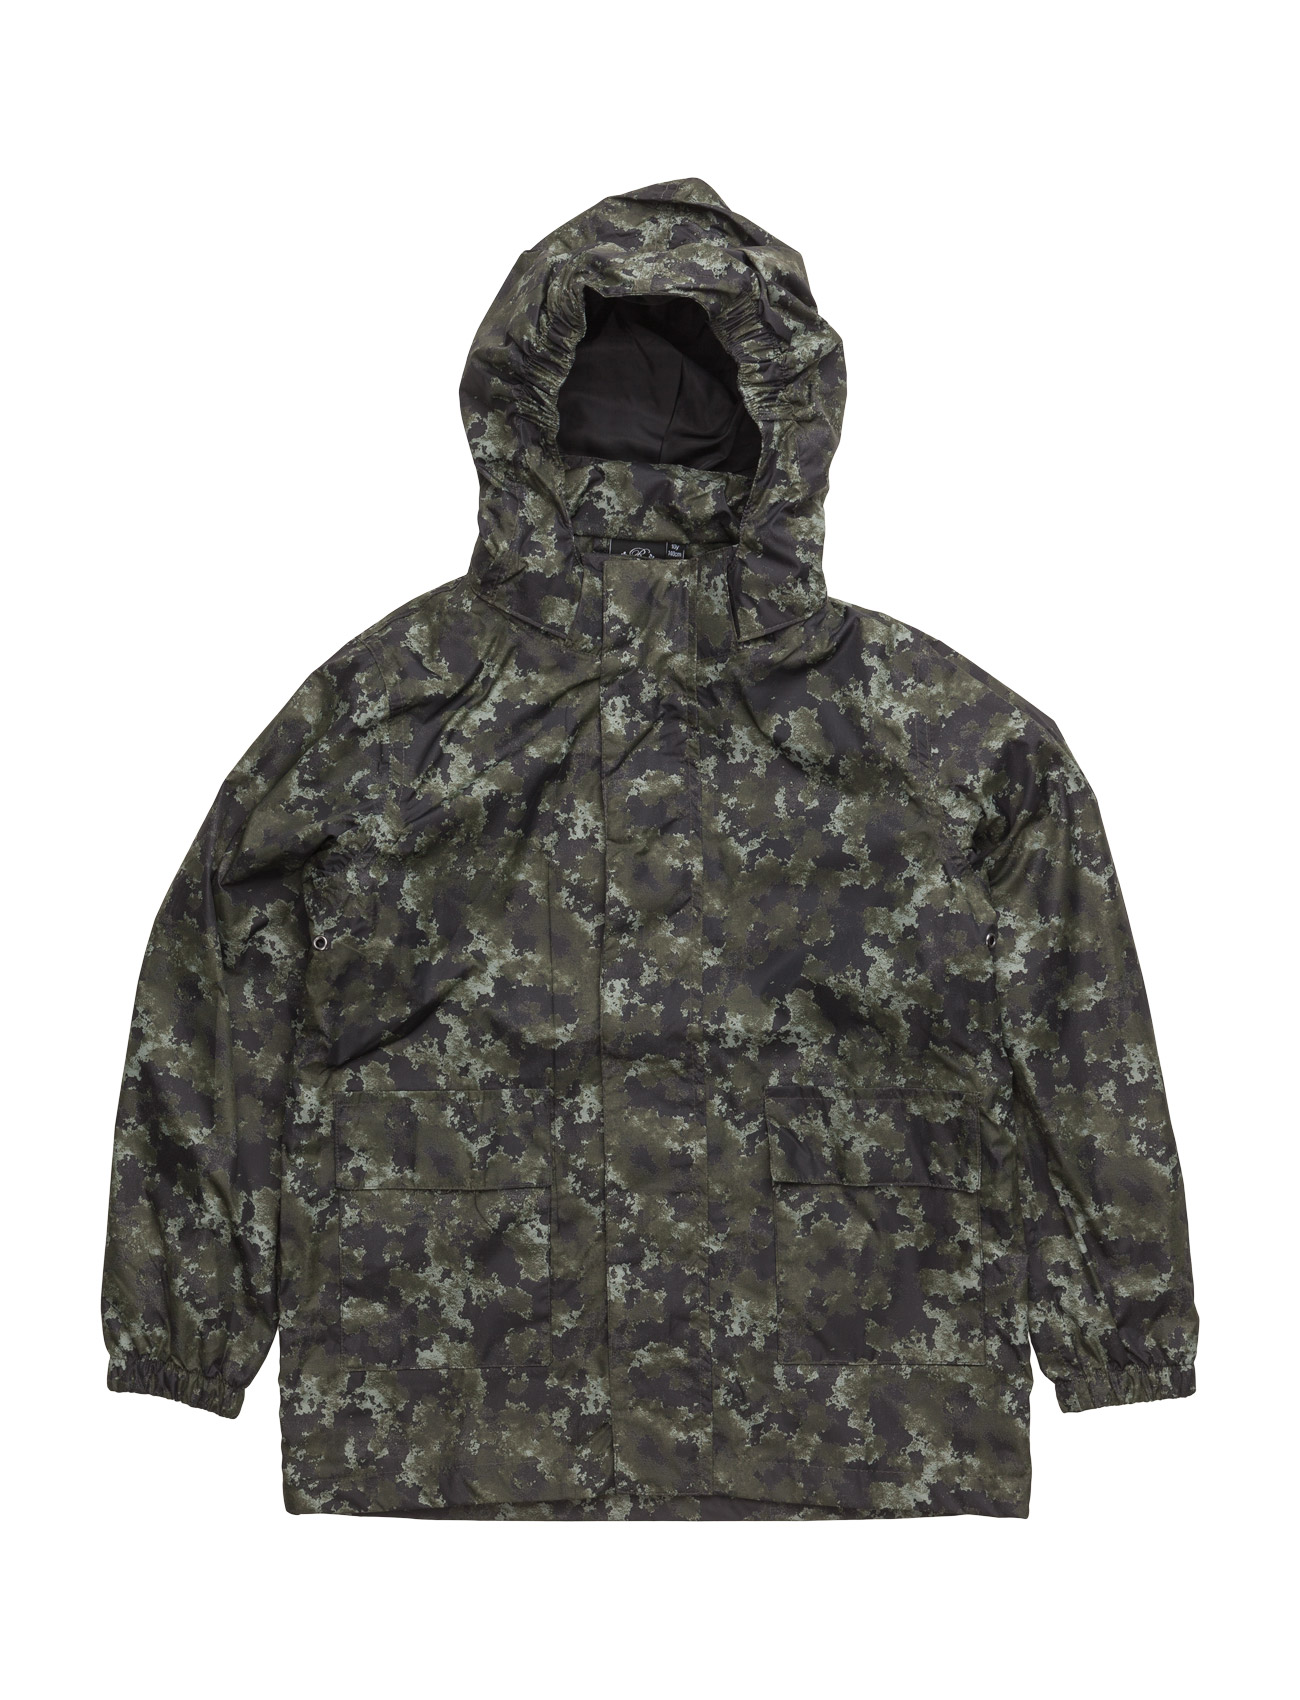 54419b464c2a Jacket (Olive) (37.77 €) - Petit by Sofie Schnoor -